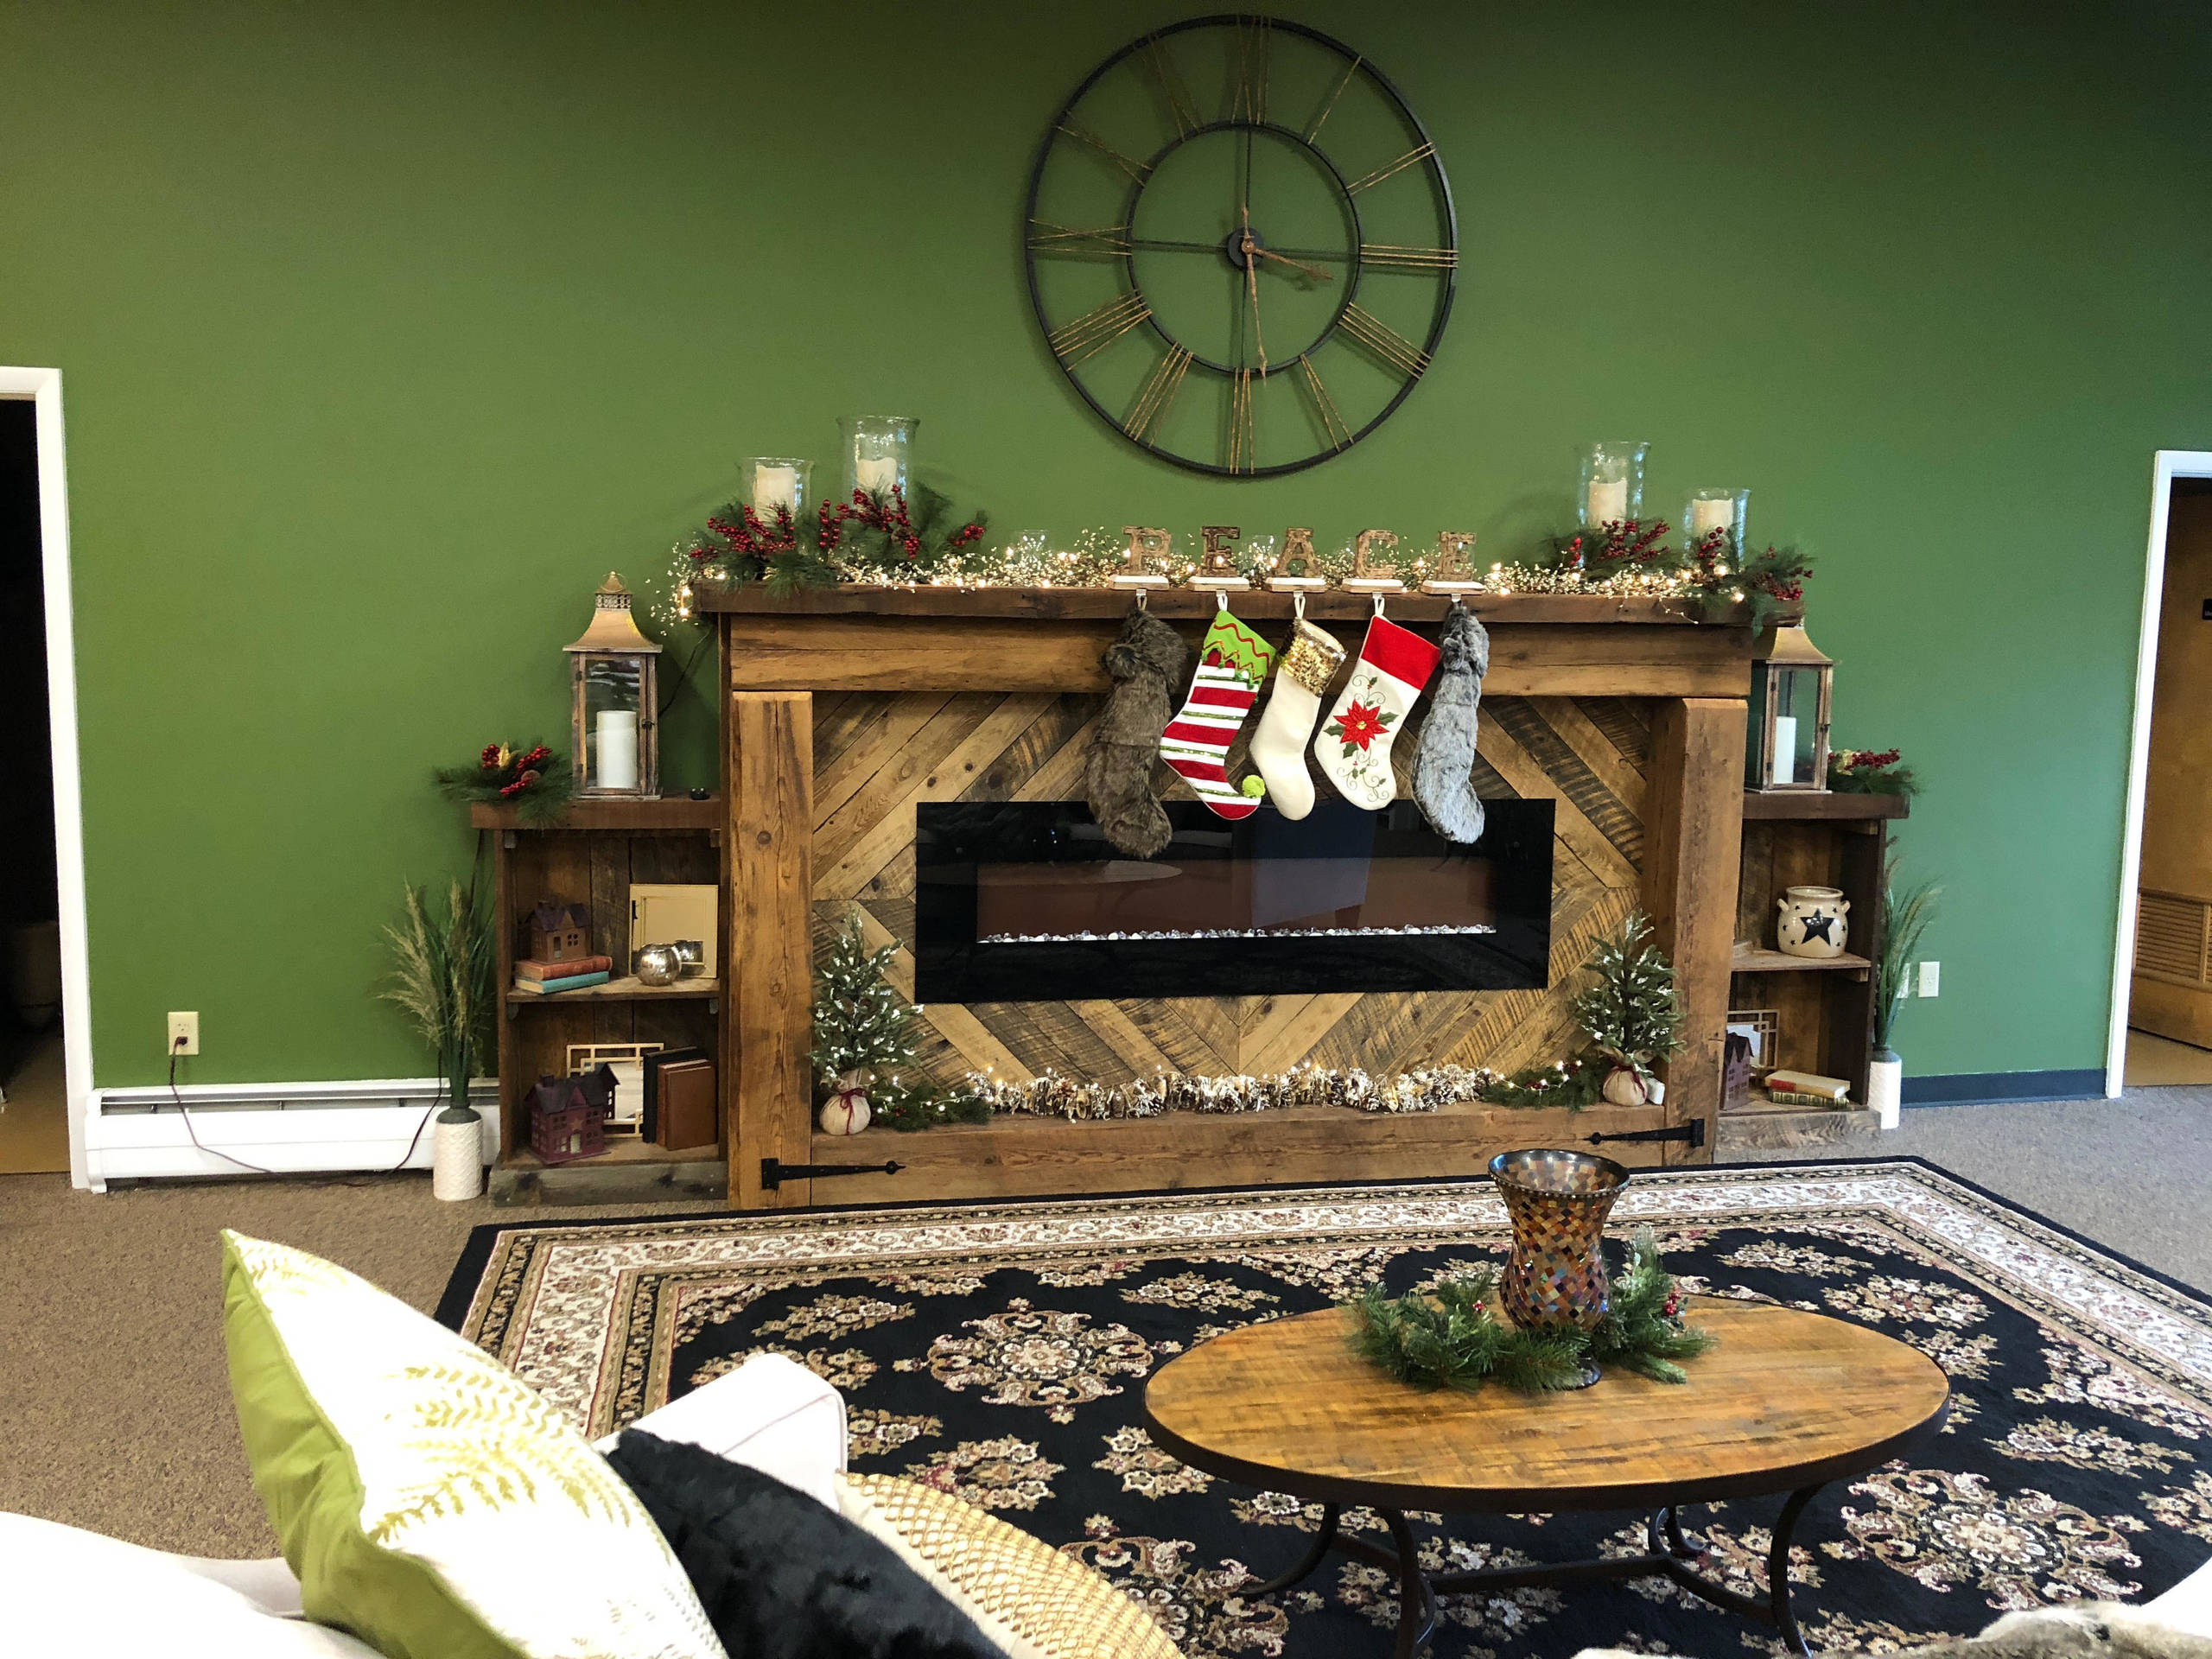 Holiday & Seasonal Decorating Projects